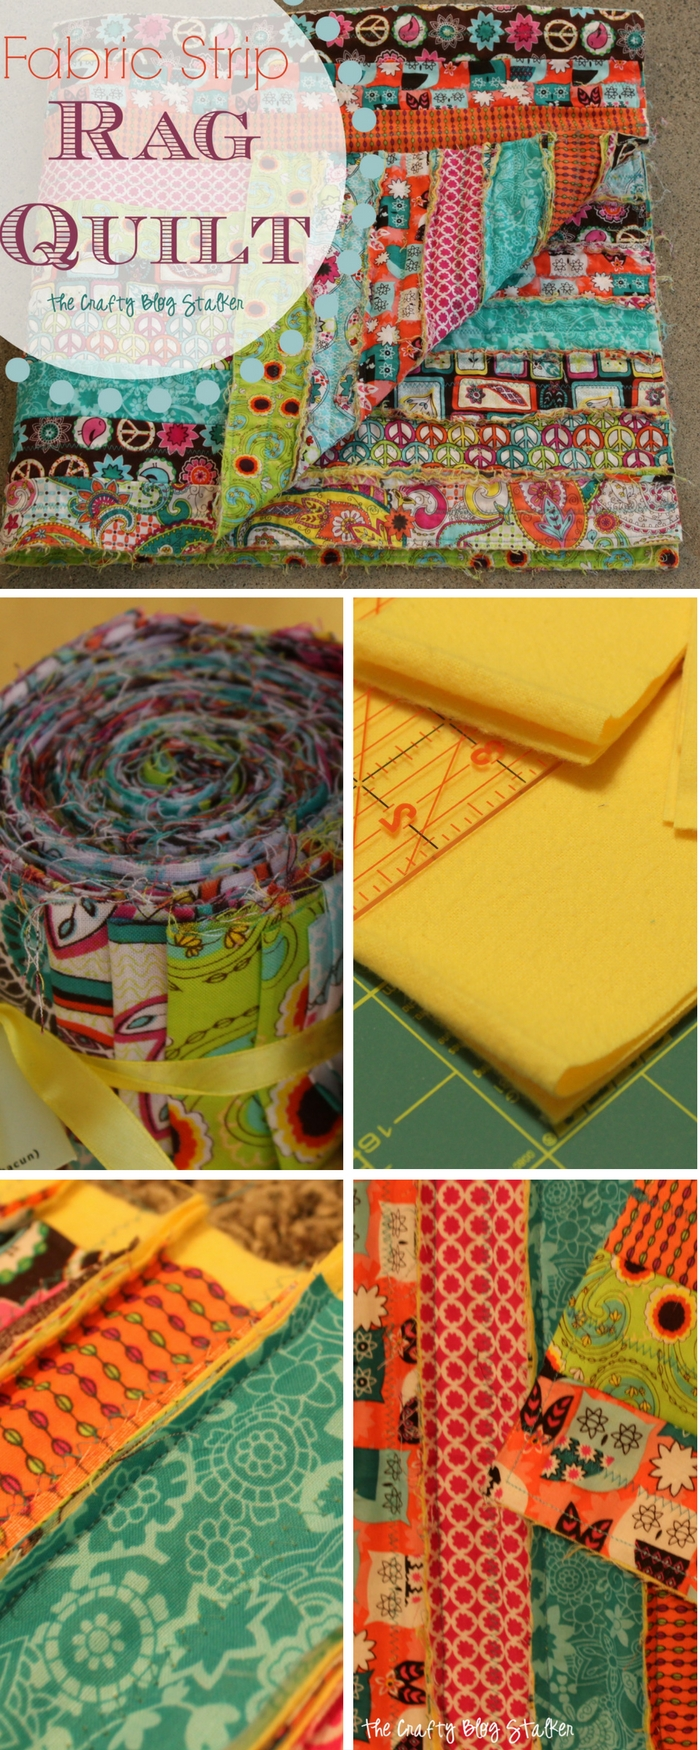 Learn how to sew a simple fabric strip rag quilt using jelly rolls. An easy DIY craft tutorial idea that is perfect for beginner quilters.